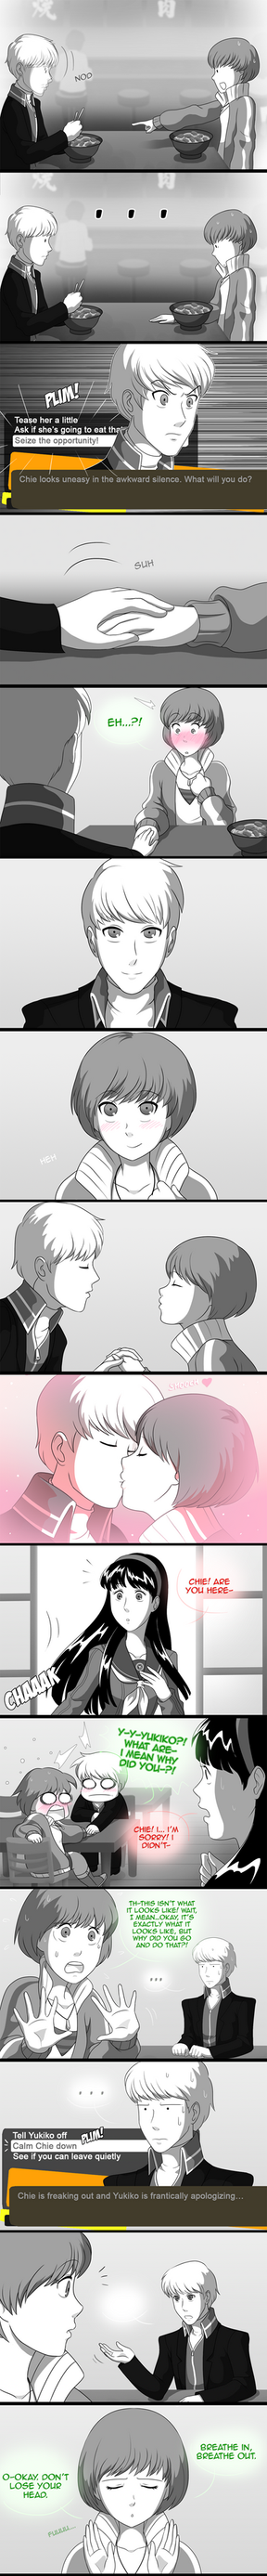 Comm- Persona 4: Signs of Love (Chie's story pt.2) by ClaraKerber